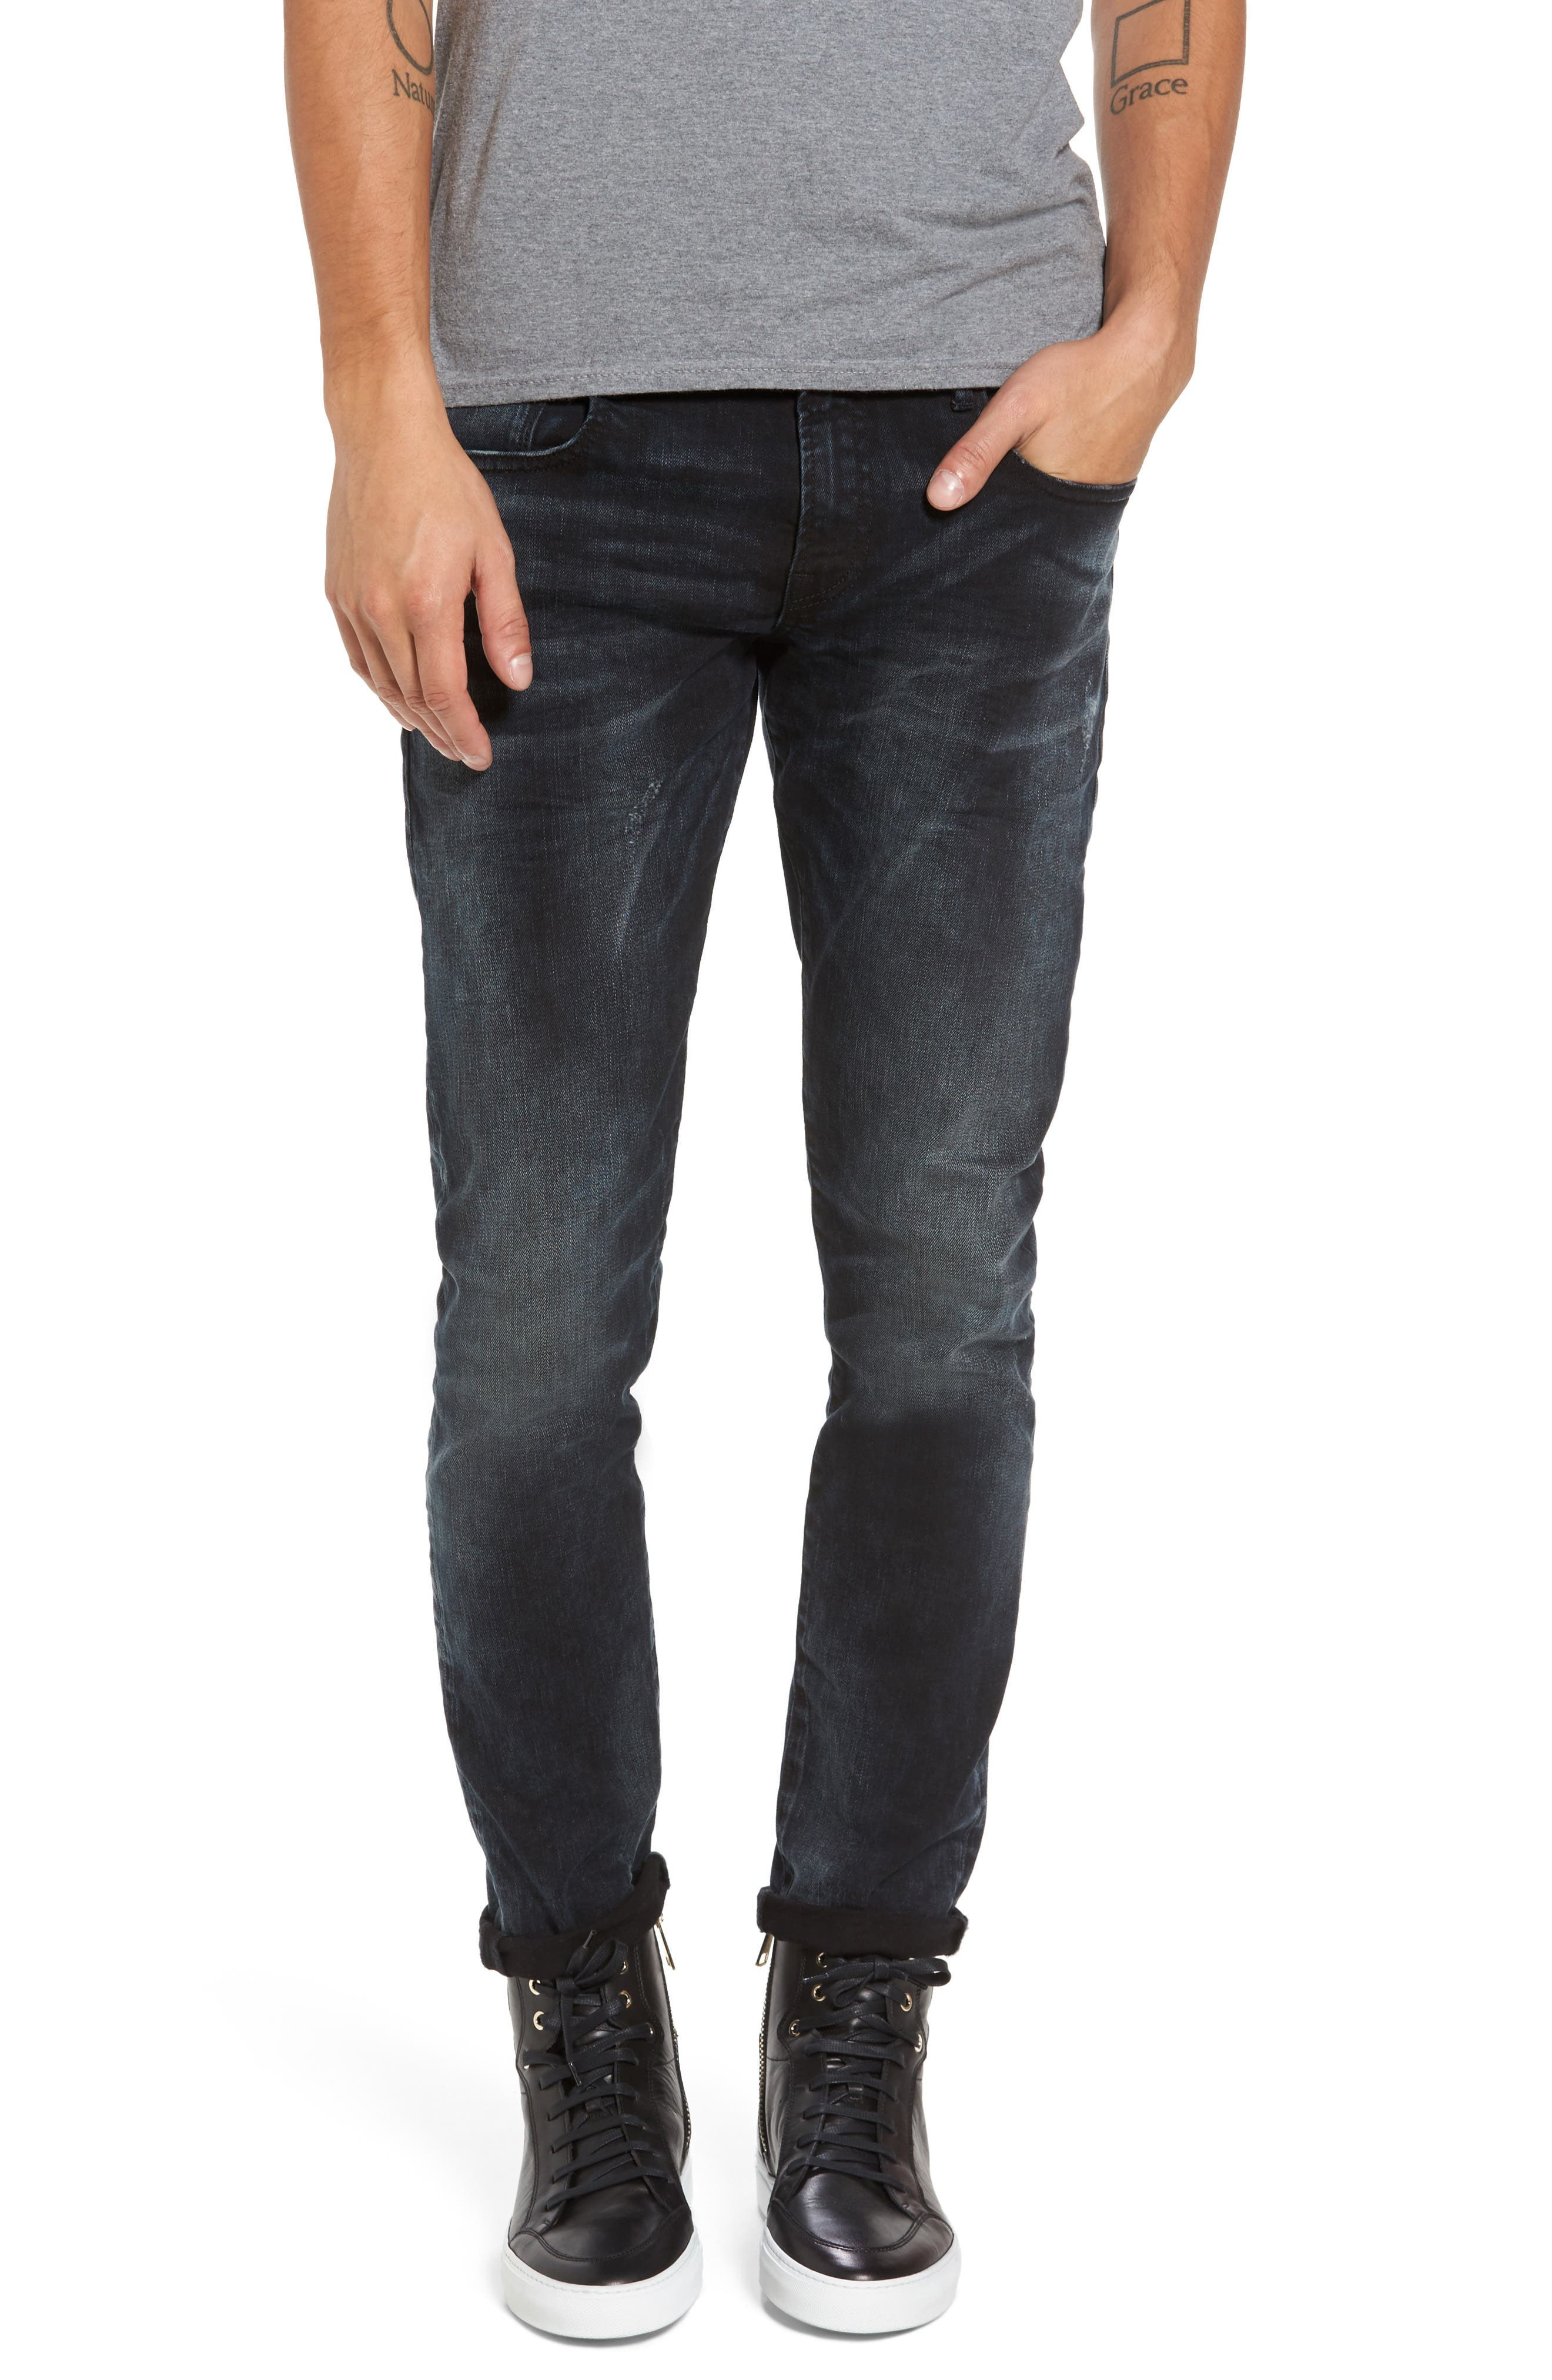 Scotch & Soda Tye Slim Fit Jeans (Sander)